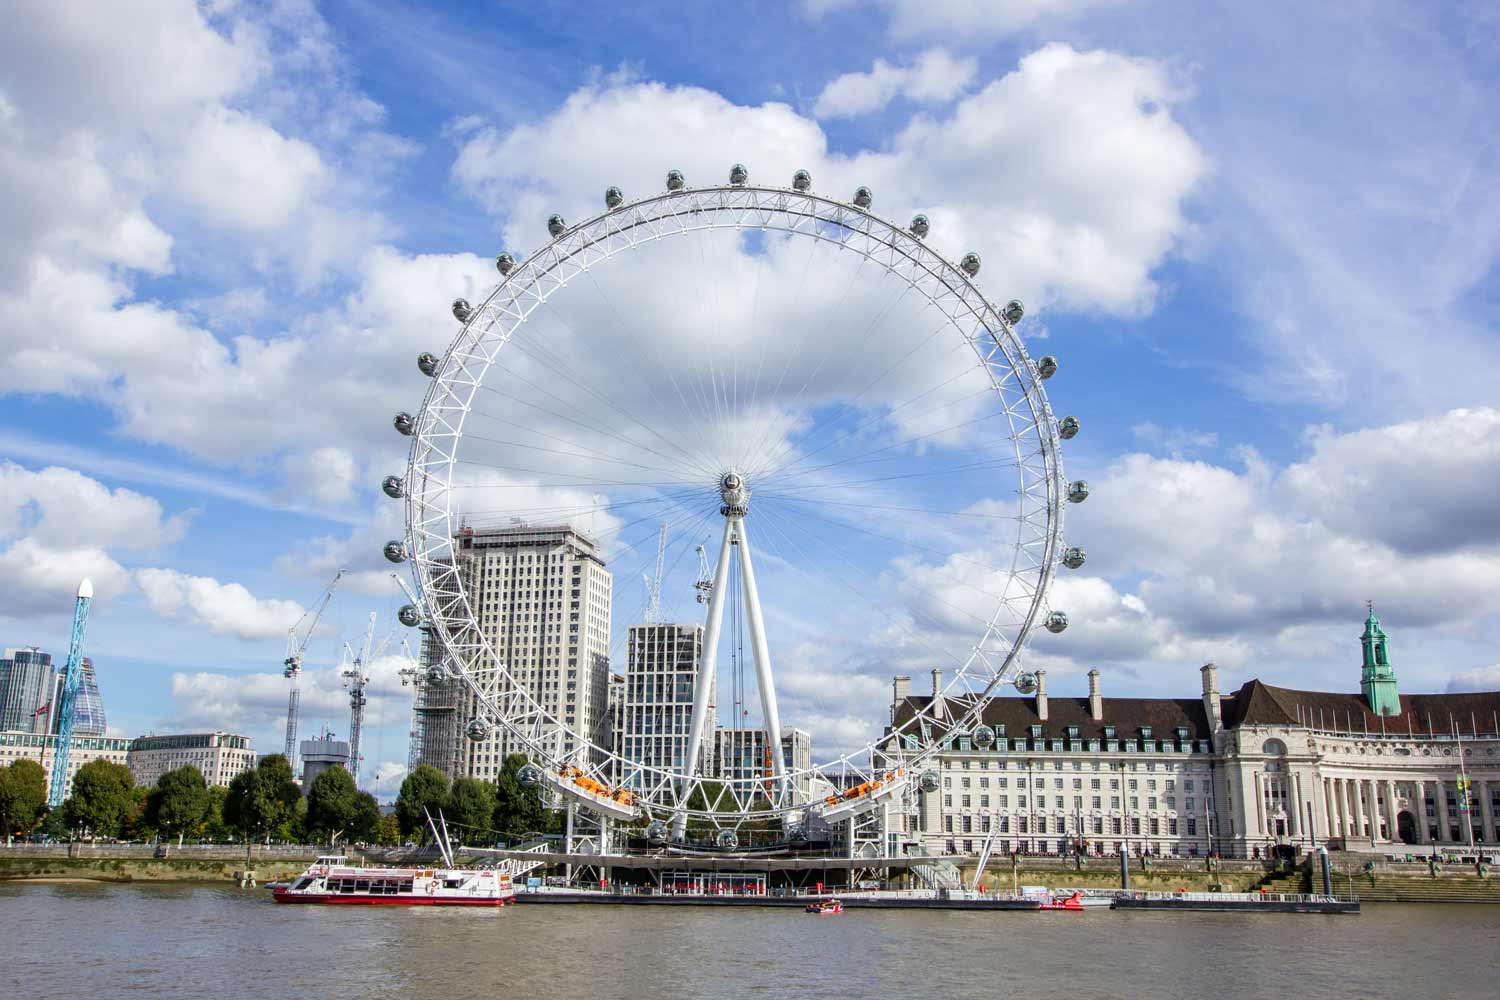 Iconic London eye, London United Kingdom